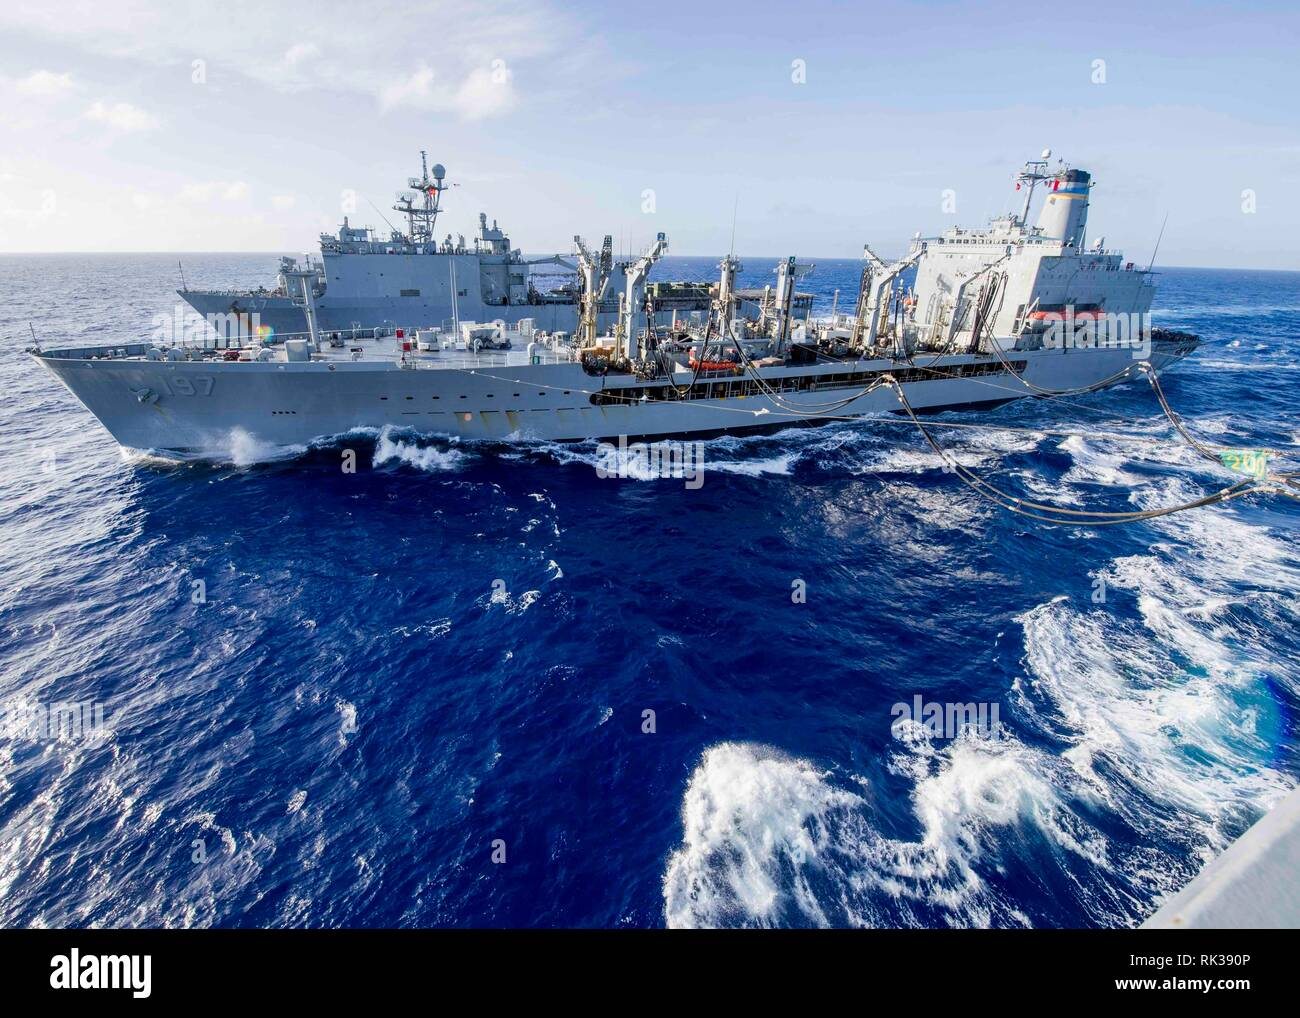 190207-N-PH222-1022 PACIFIC OCEAN (Feb. 7, 2019) Fleet replenishment oiler USNS Pecos (T-AO 197), center, conducts a vertical replenishment with the Whidbey Island-class amphibious dock landing ship USS Rushmore (LSD 47), top, and the San Antonio-class amphibious transport dock ship USS Anchorage (LPD 23) during a deployment of the Essex Amphibious Ready Group (ARG) and 13th Marine Expeditionary Unit (MEU). The Essex ARG/13th MEU is a capable and lethal Navy-Marine Corps team deployed to the 7th fleet area of operations to support regional stability, reassure partners and allies and maintain a - Stock Image